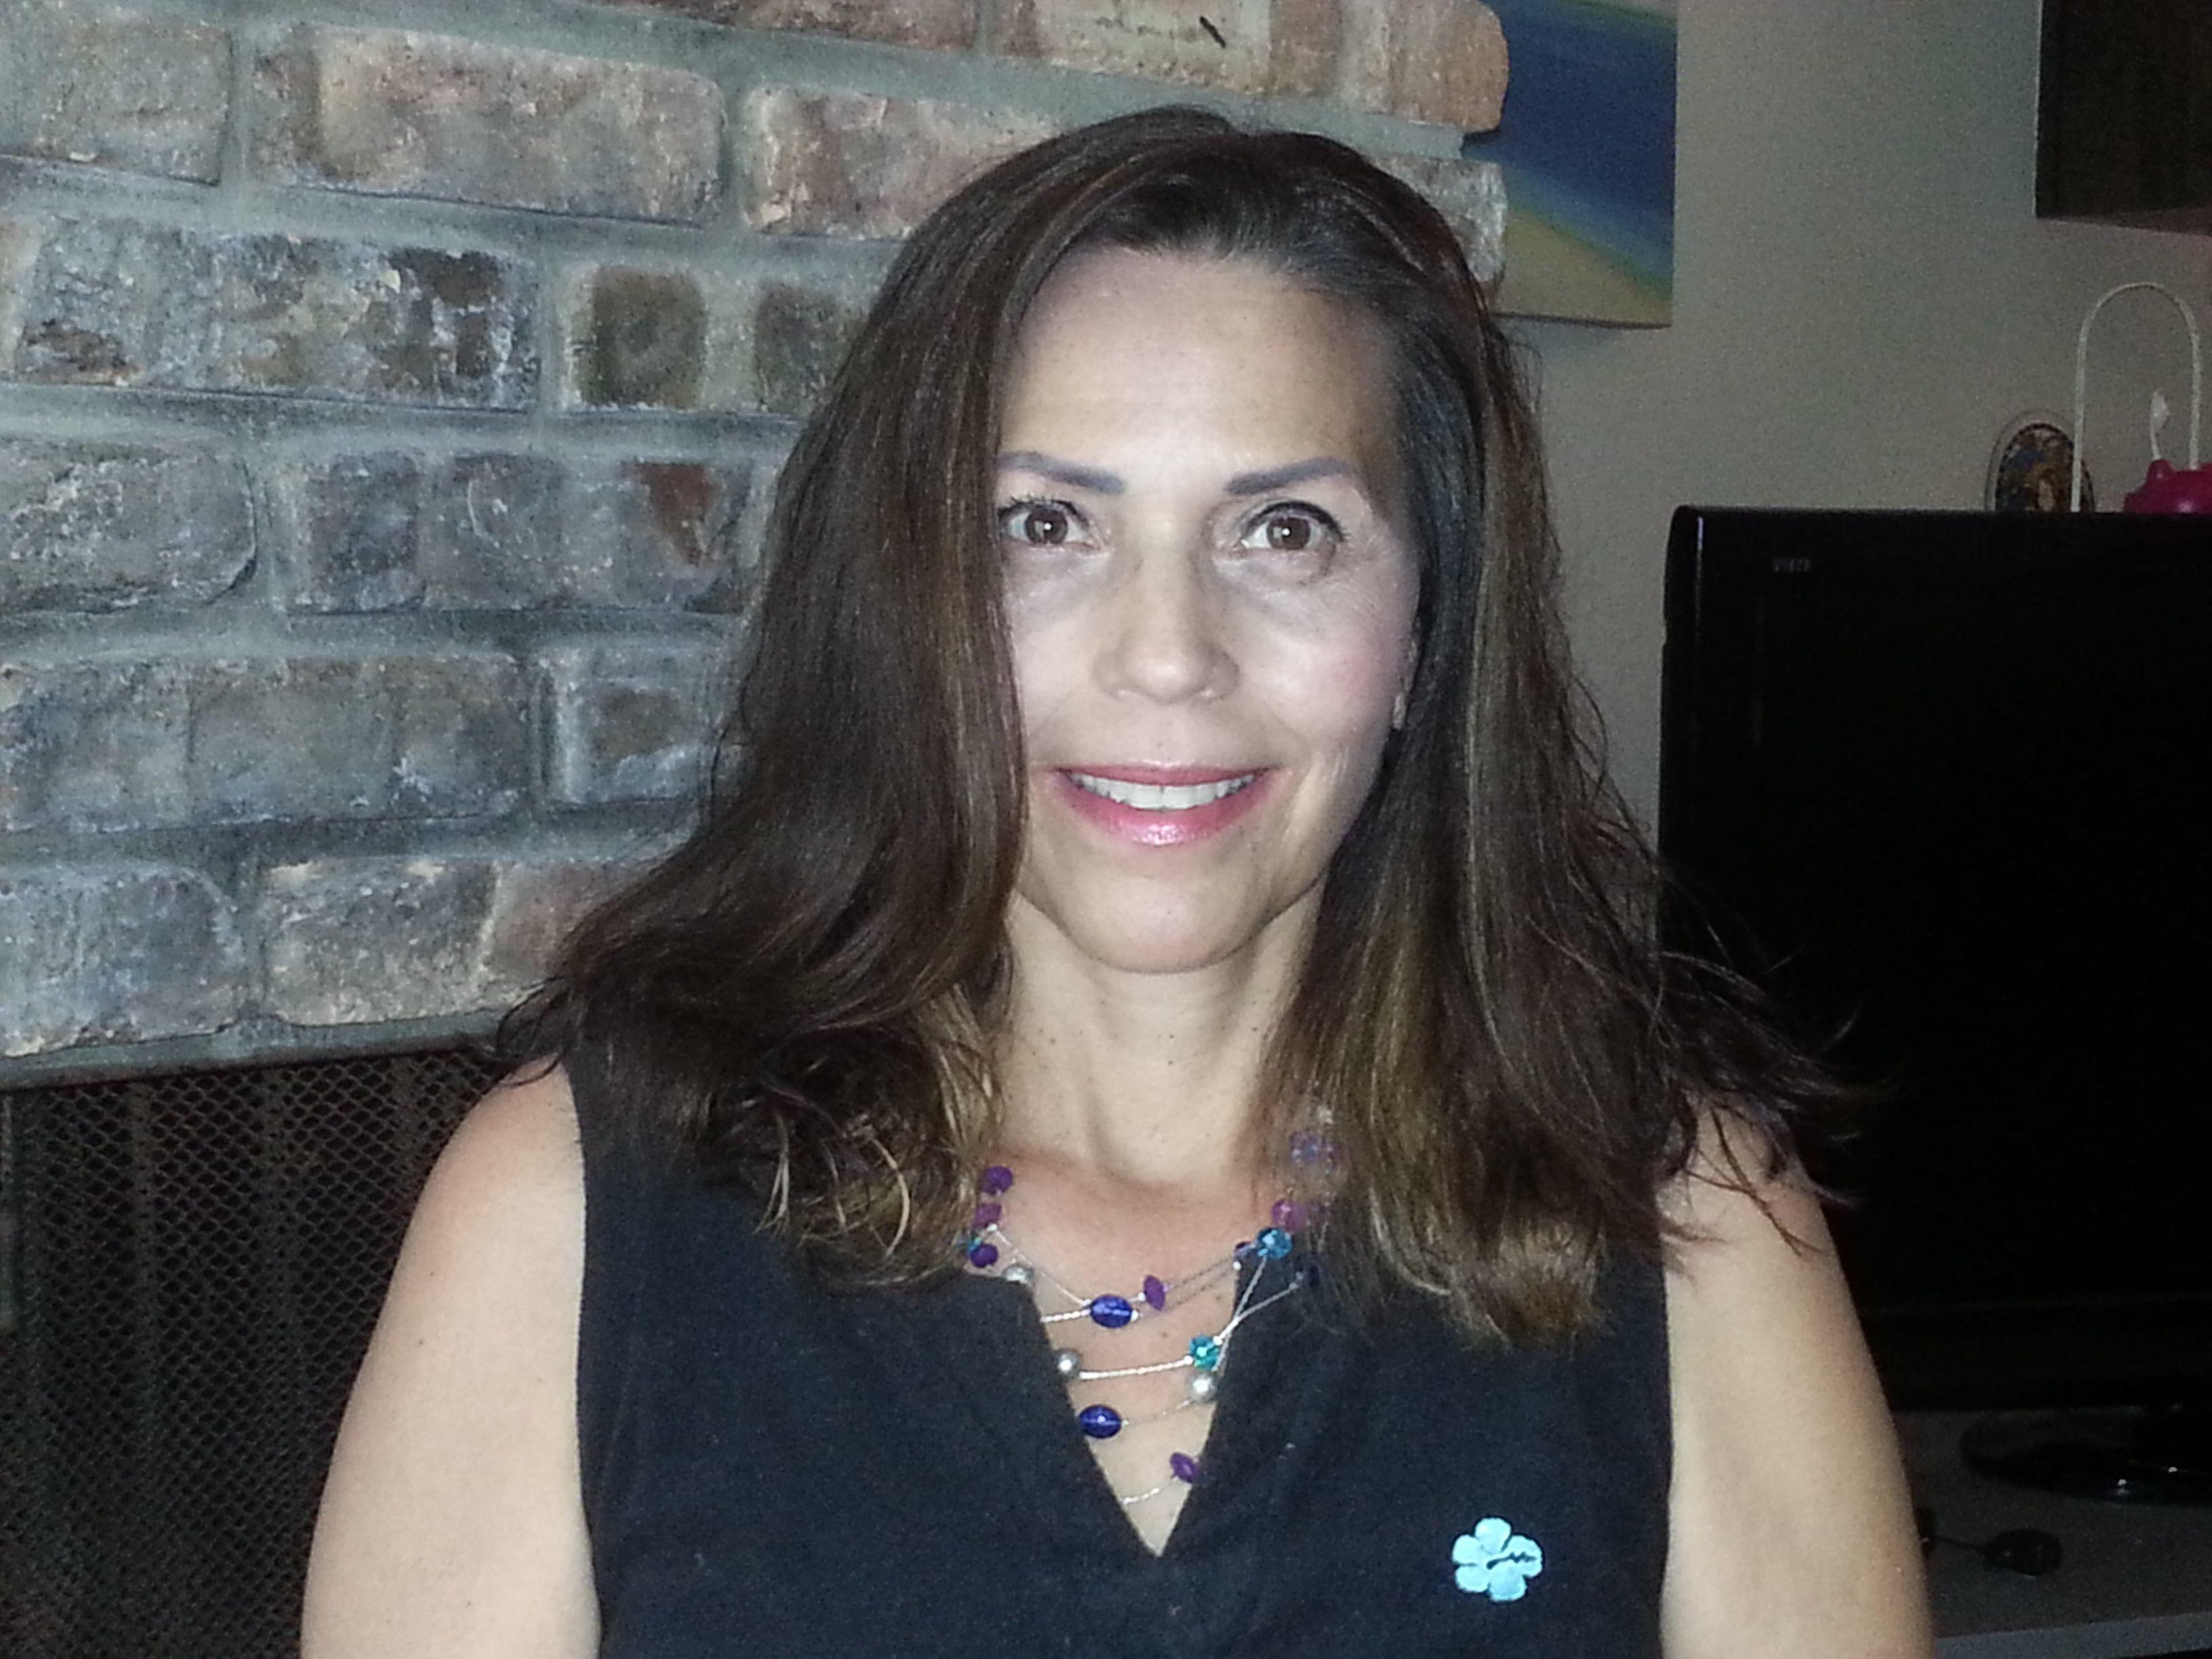 clermont singles over 50 Find meetups in clermont, florida about singles and meet people in your  singles meetups in clermont  sweet life fun events for women friends over 50.